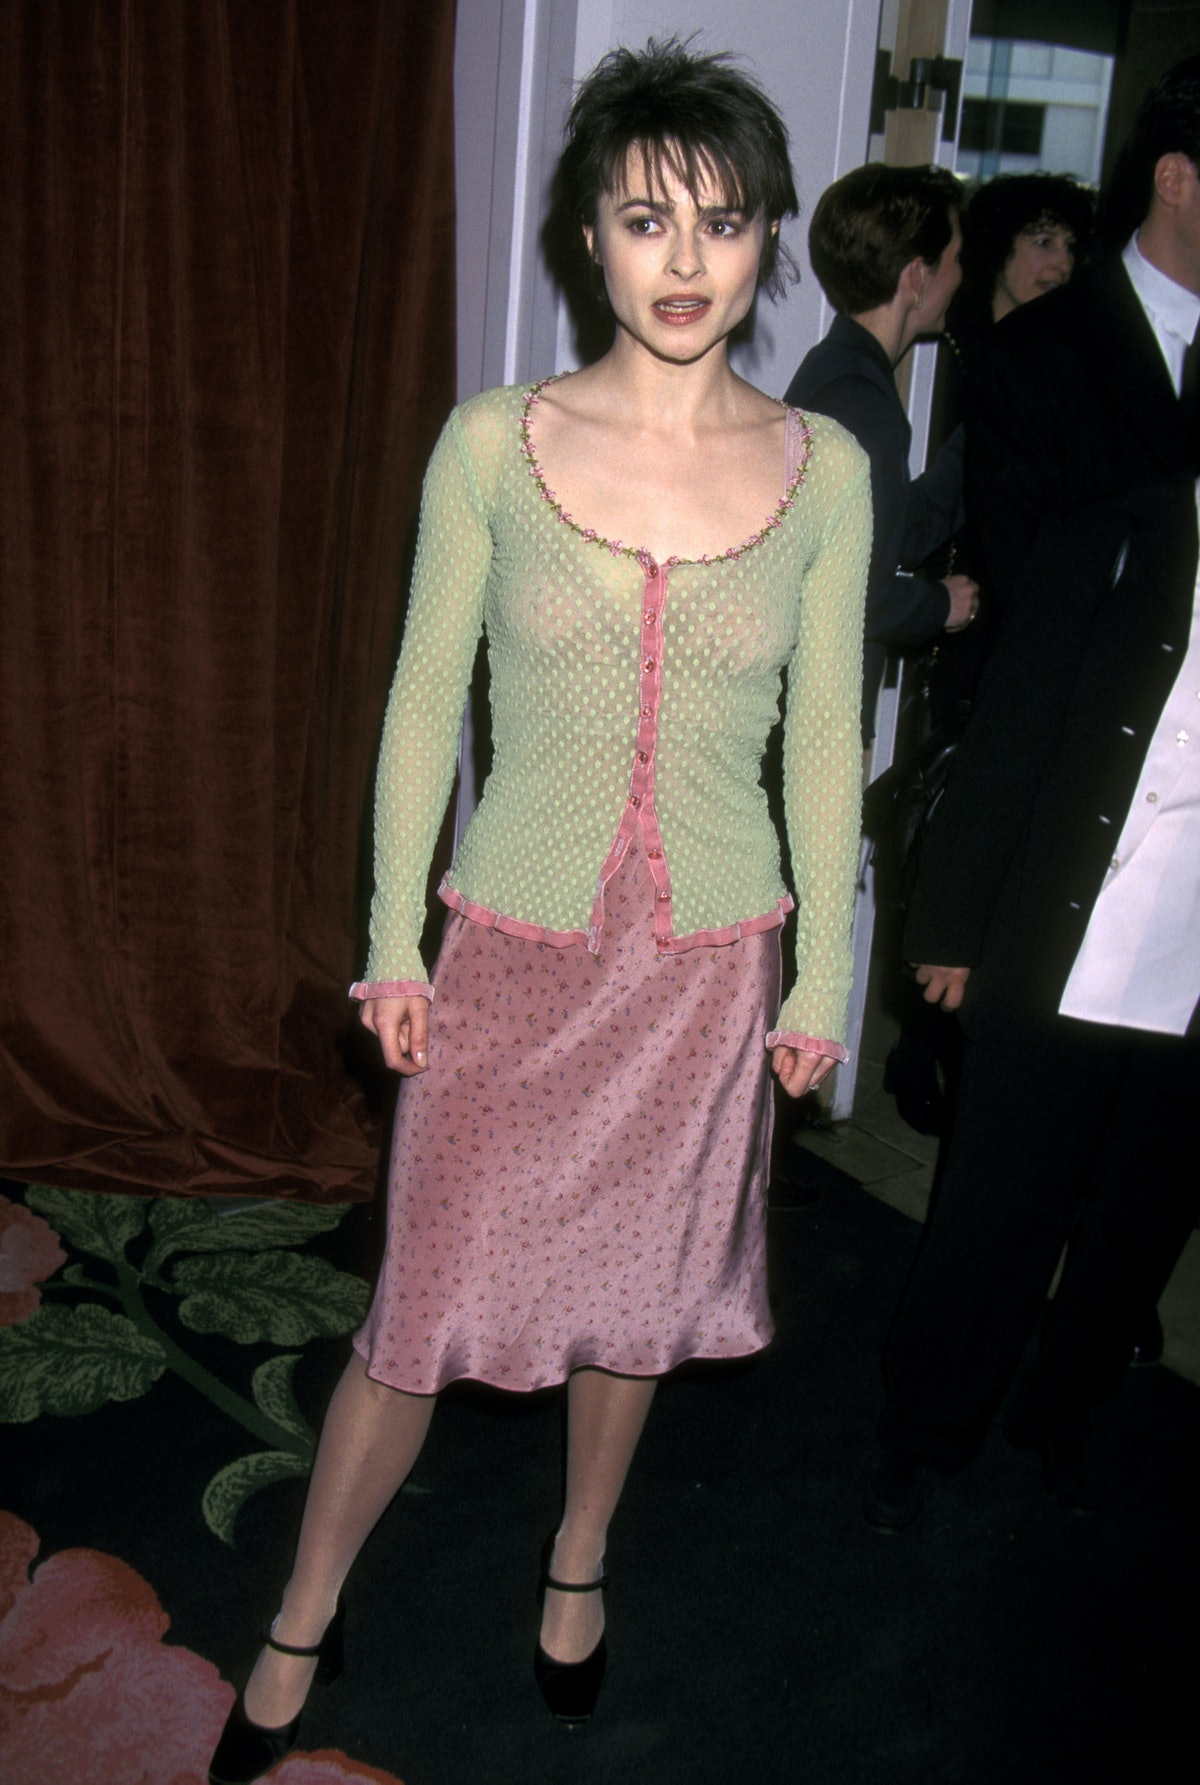 HBC in a green cardigan and pink dress